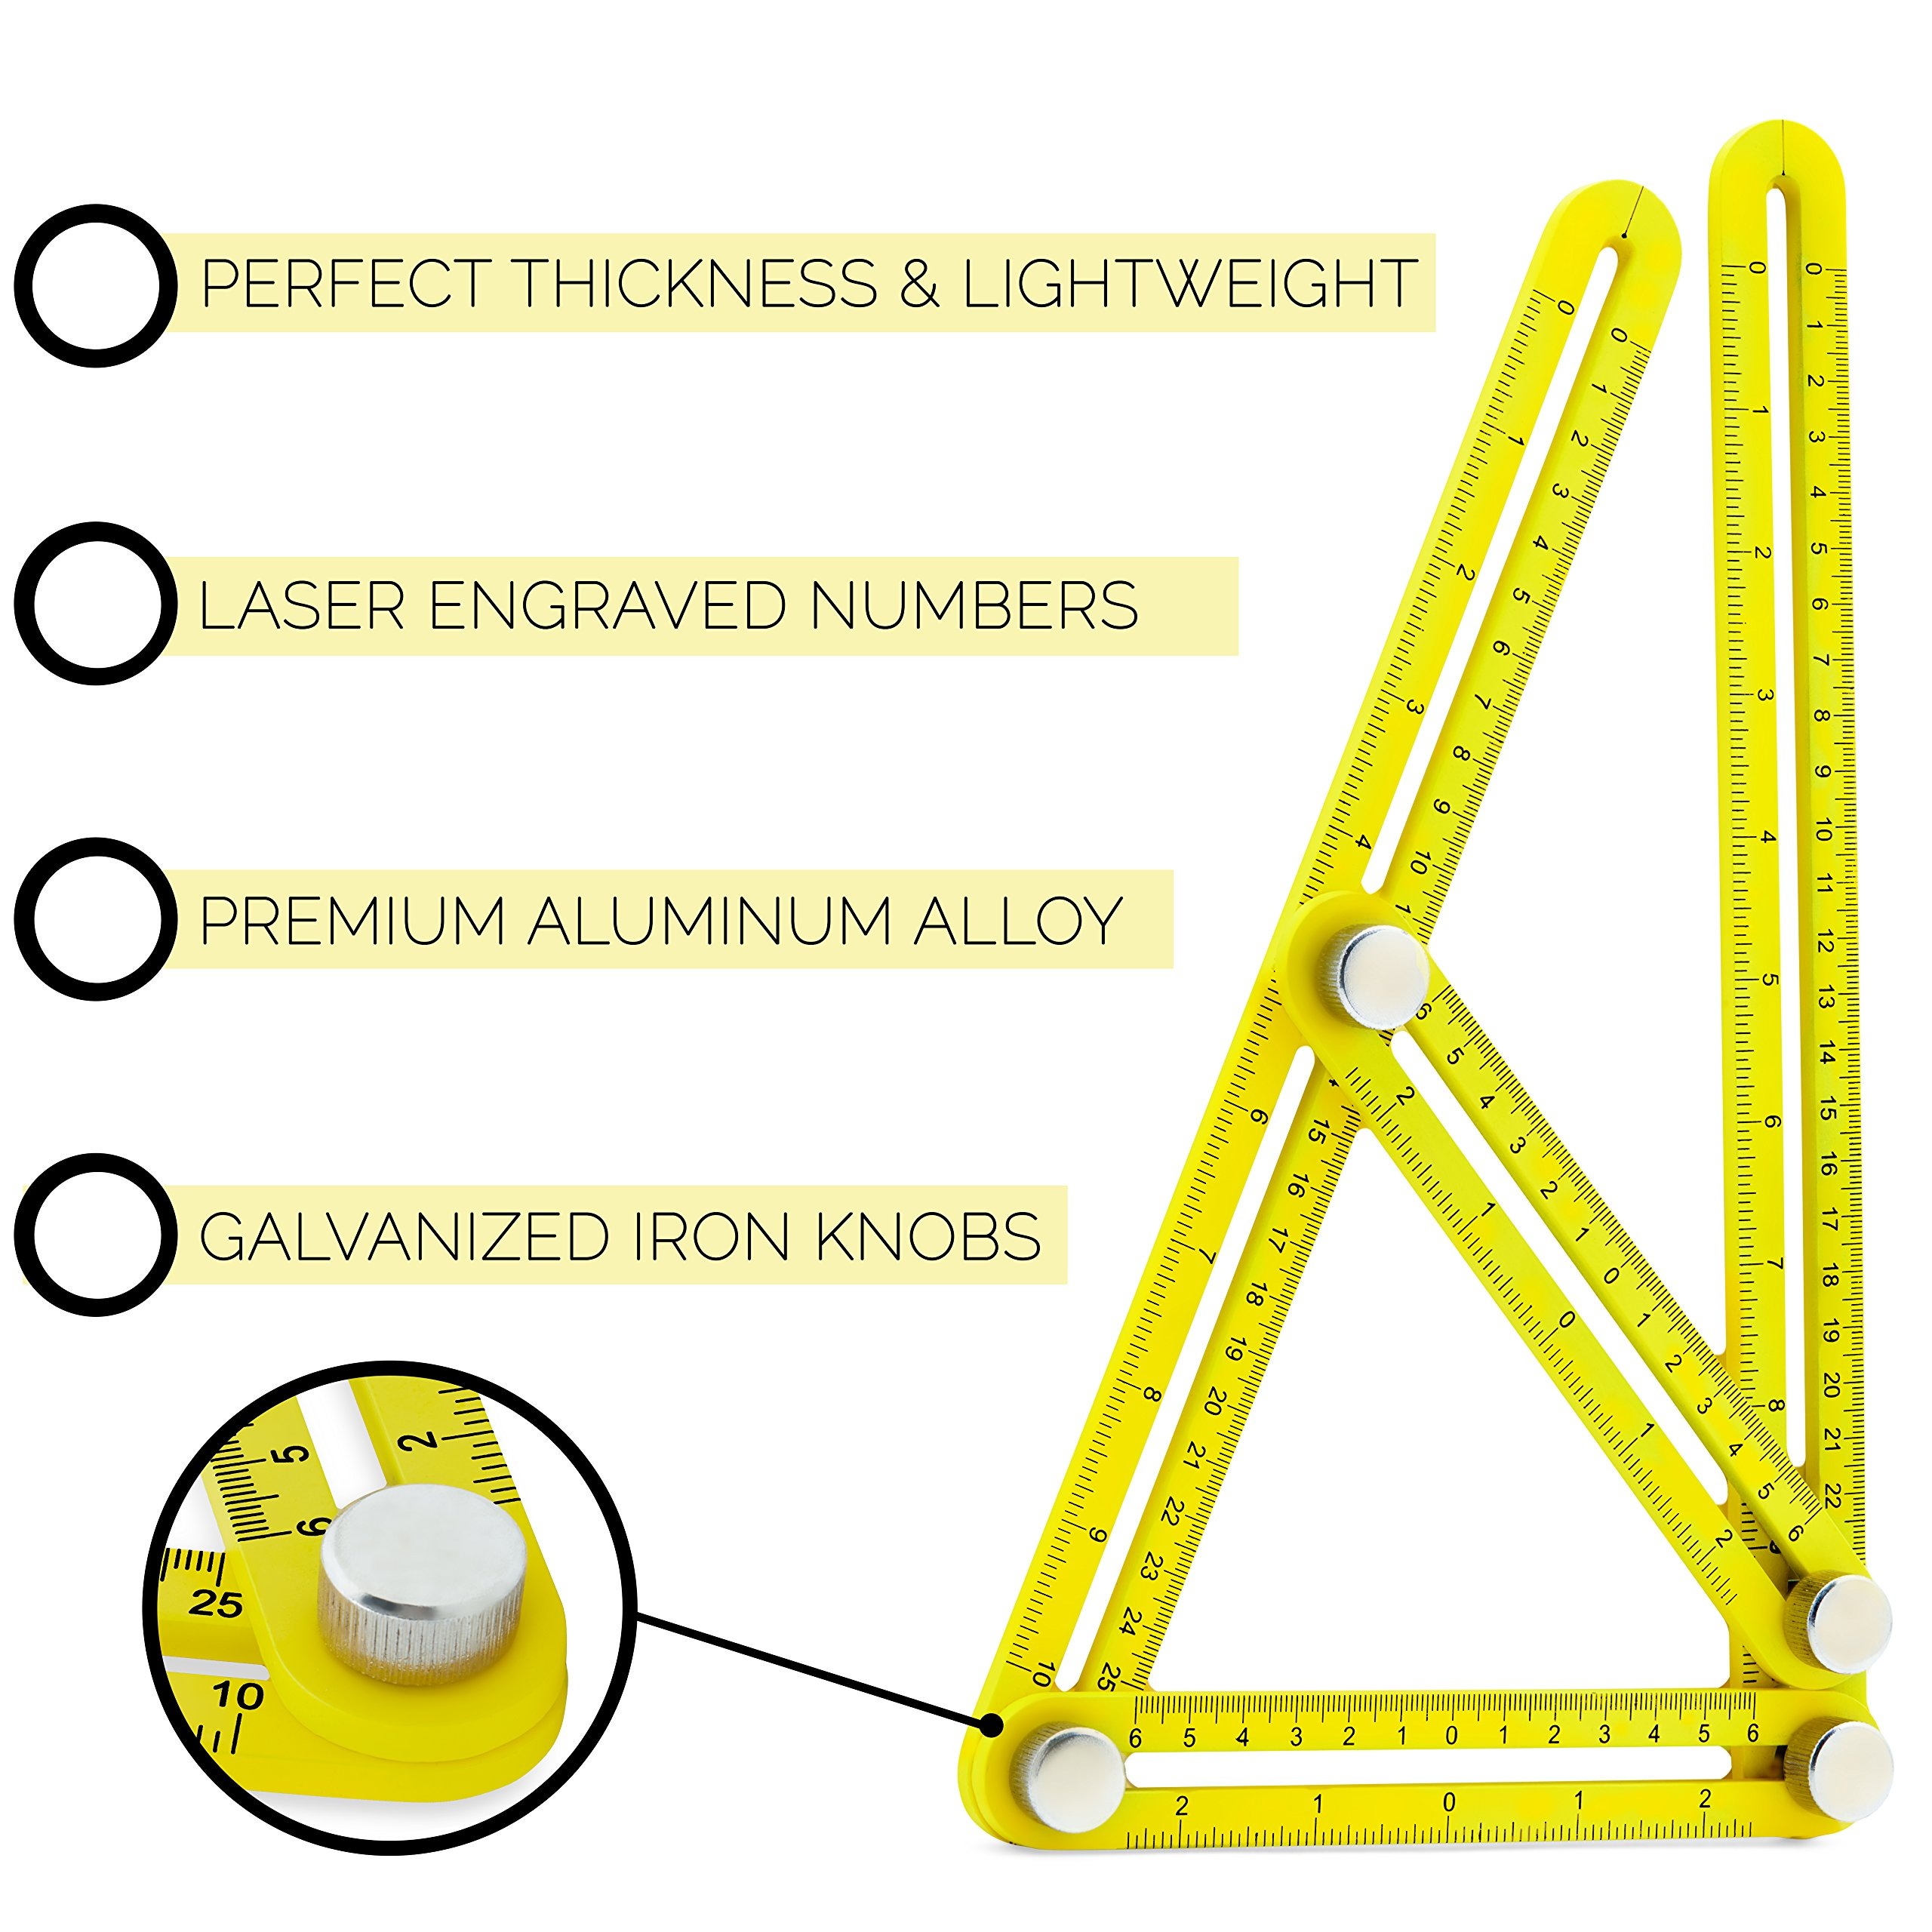 Universal Angularizer Ruler and Multi-Angle Measuring Tool in Yellow Metal - Template Tool Makes Great Gifts for Men Him Husband Dad Father DIY by Premium Rhino (Image #3)